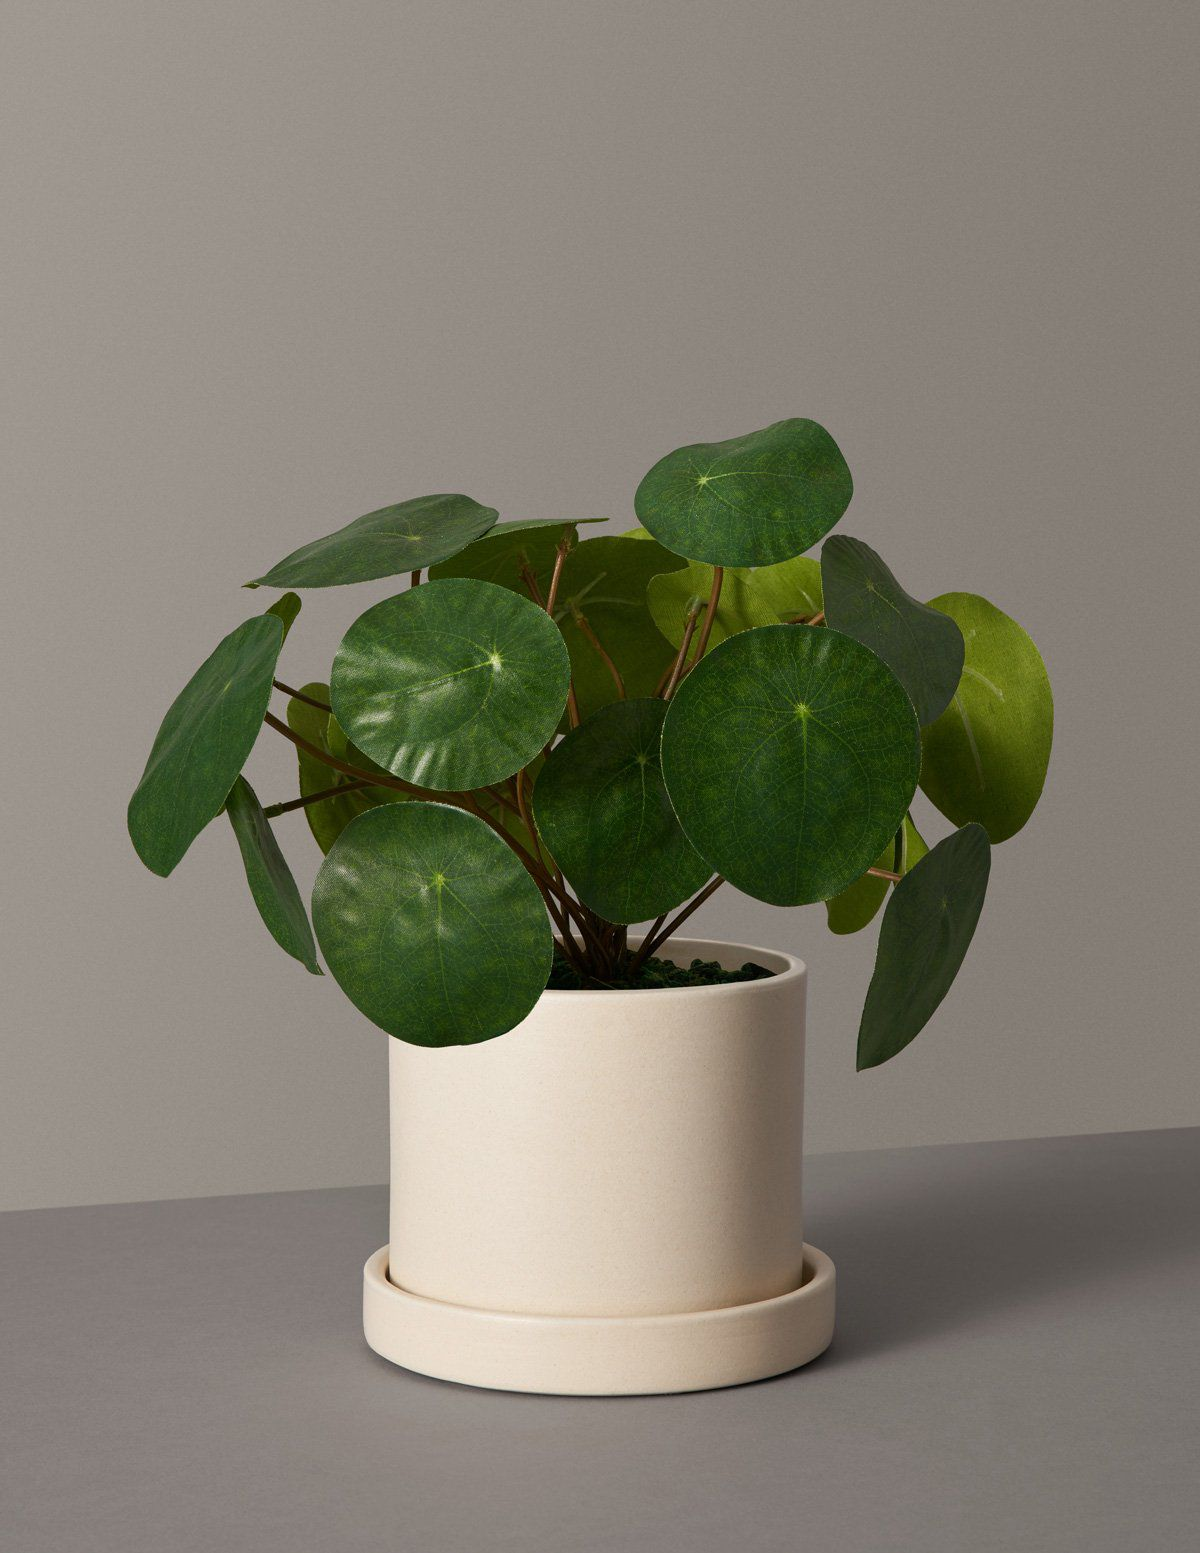 Small cream planter with coin-shaped fake plant inside.